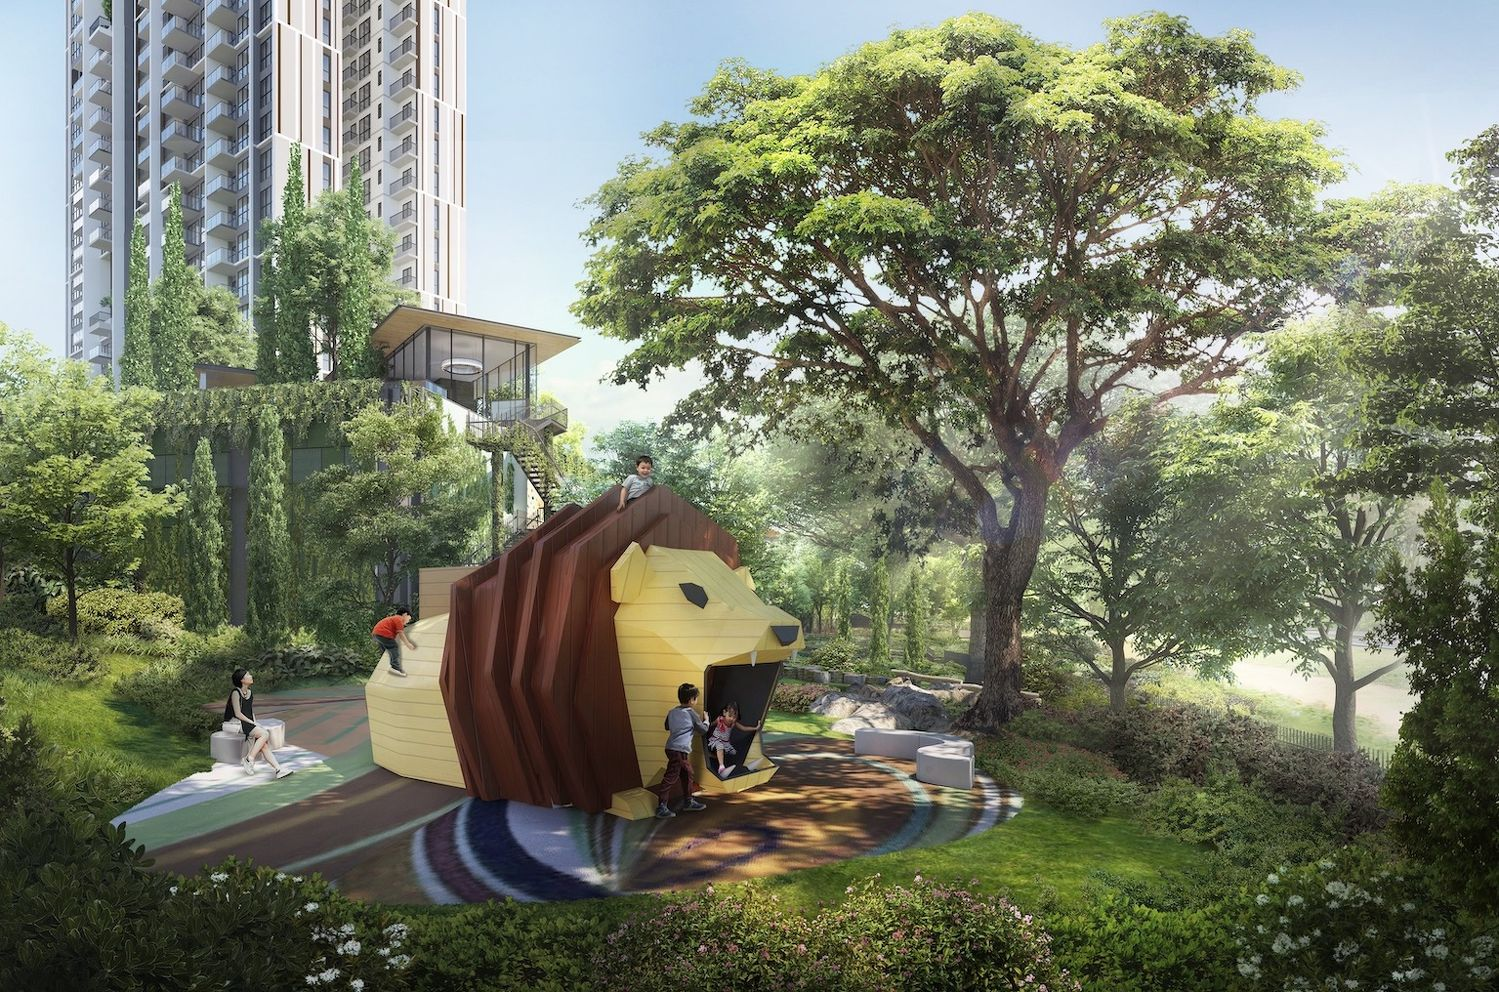 The Wilderness Fantasy Adventure - EDGEPROP SINGAPORE